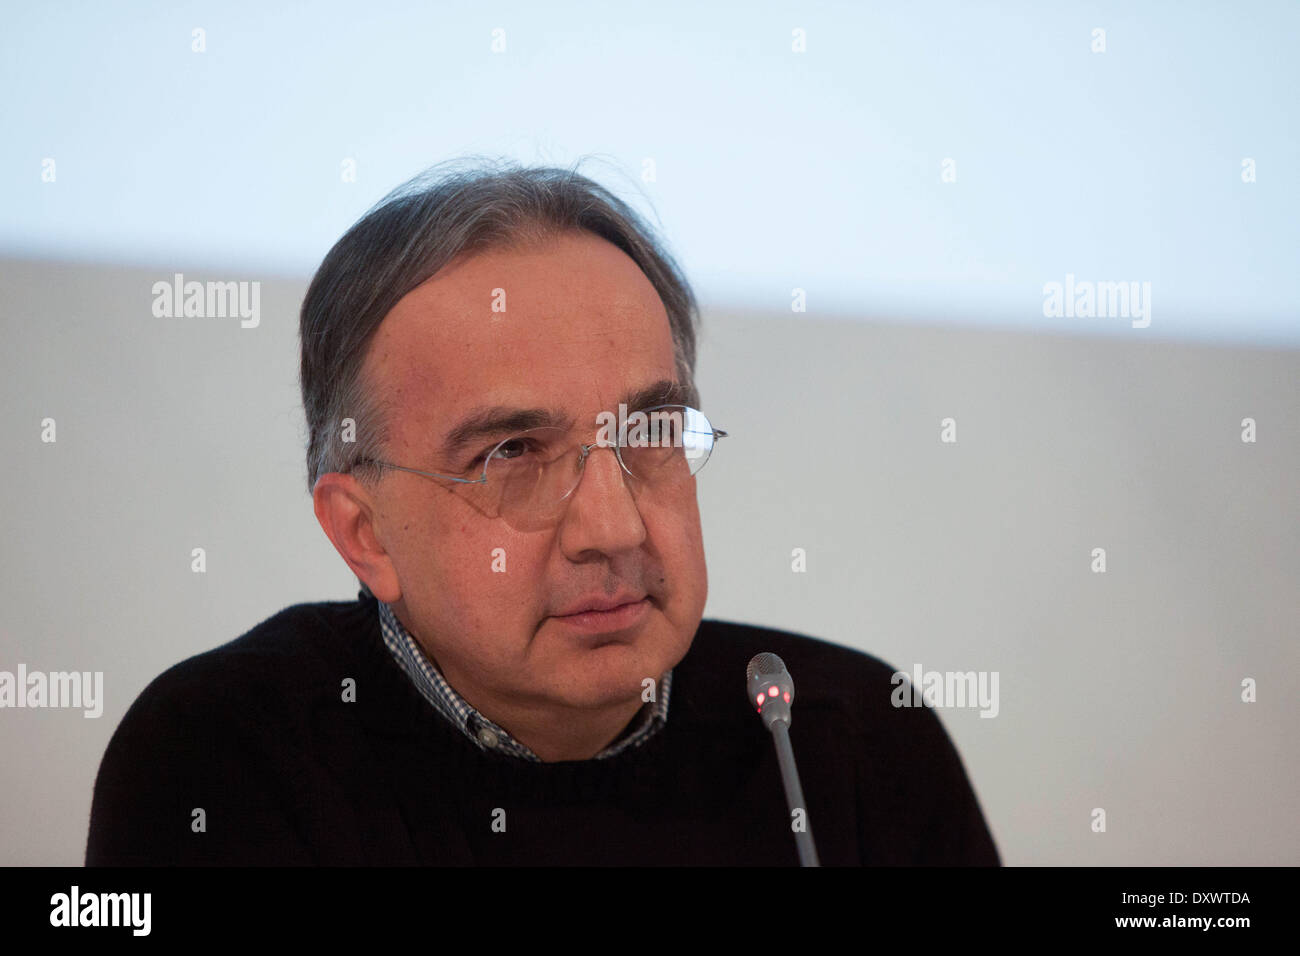 Turin, Italy. 31st Mar, 2014. Sergio Marchionne speaks at general Meeting of Fiat Shareholders, in Turin, Italy, Stock Photo